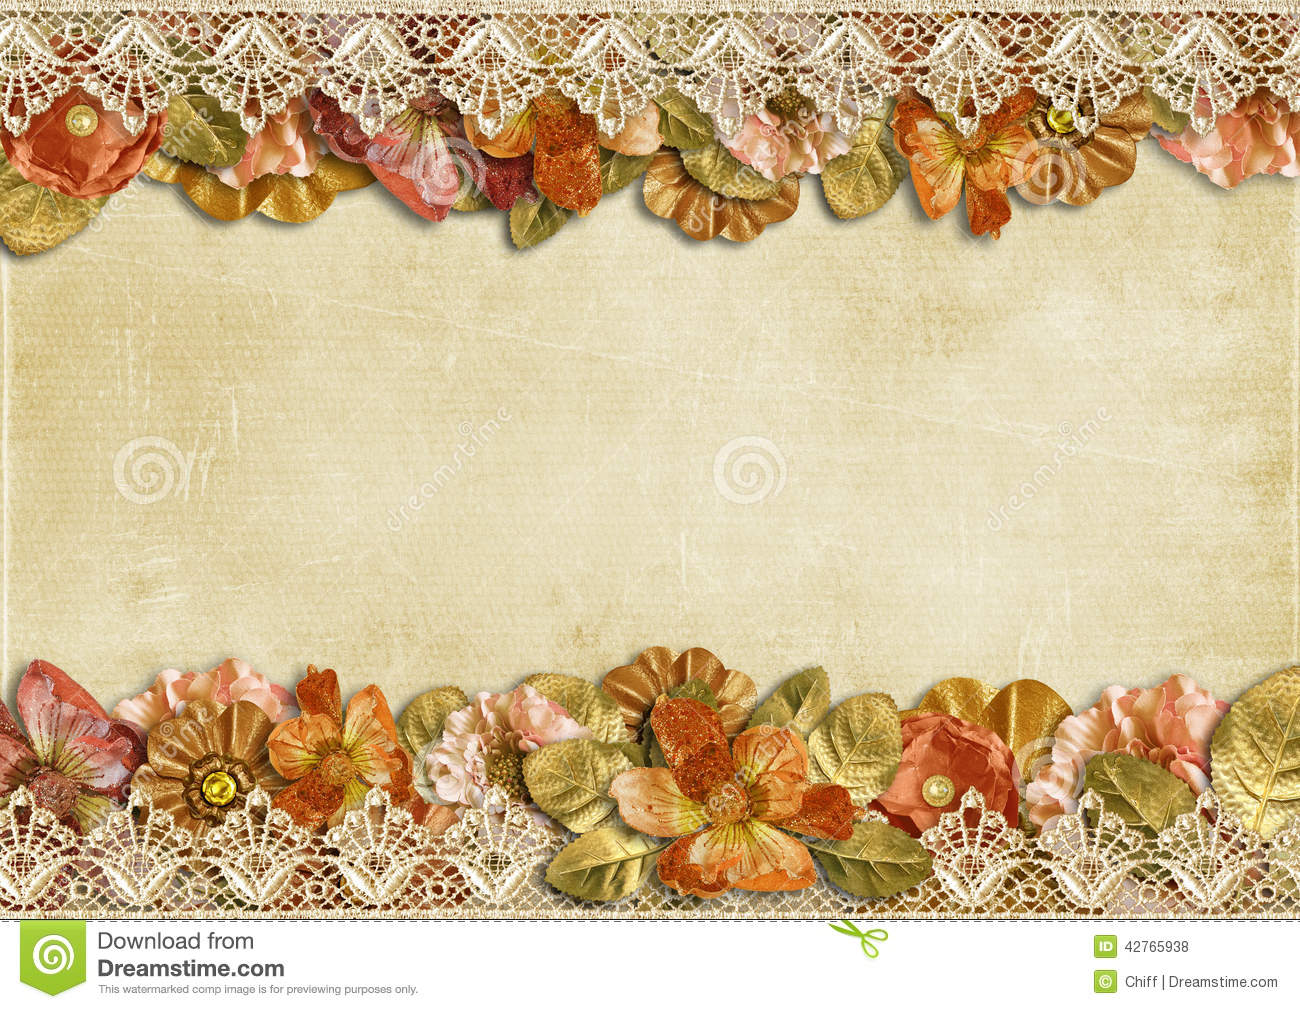 Best Place To Buy Decorations For The Home Vintage Background With A Border Of Beautiful Flowers